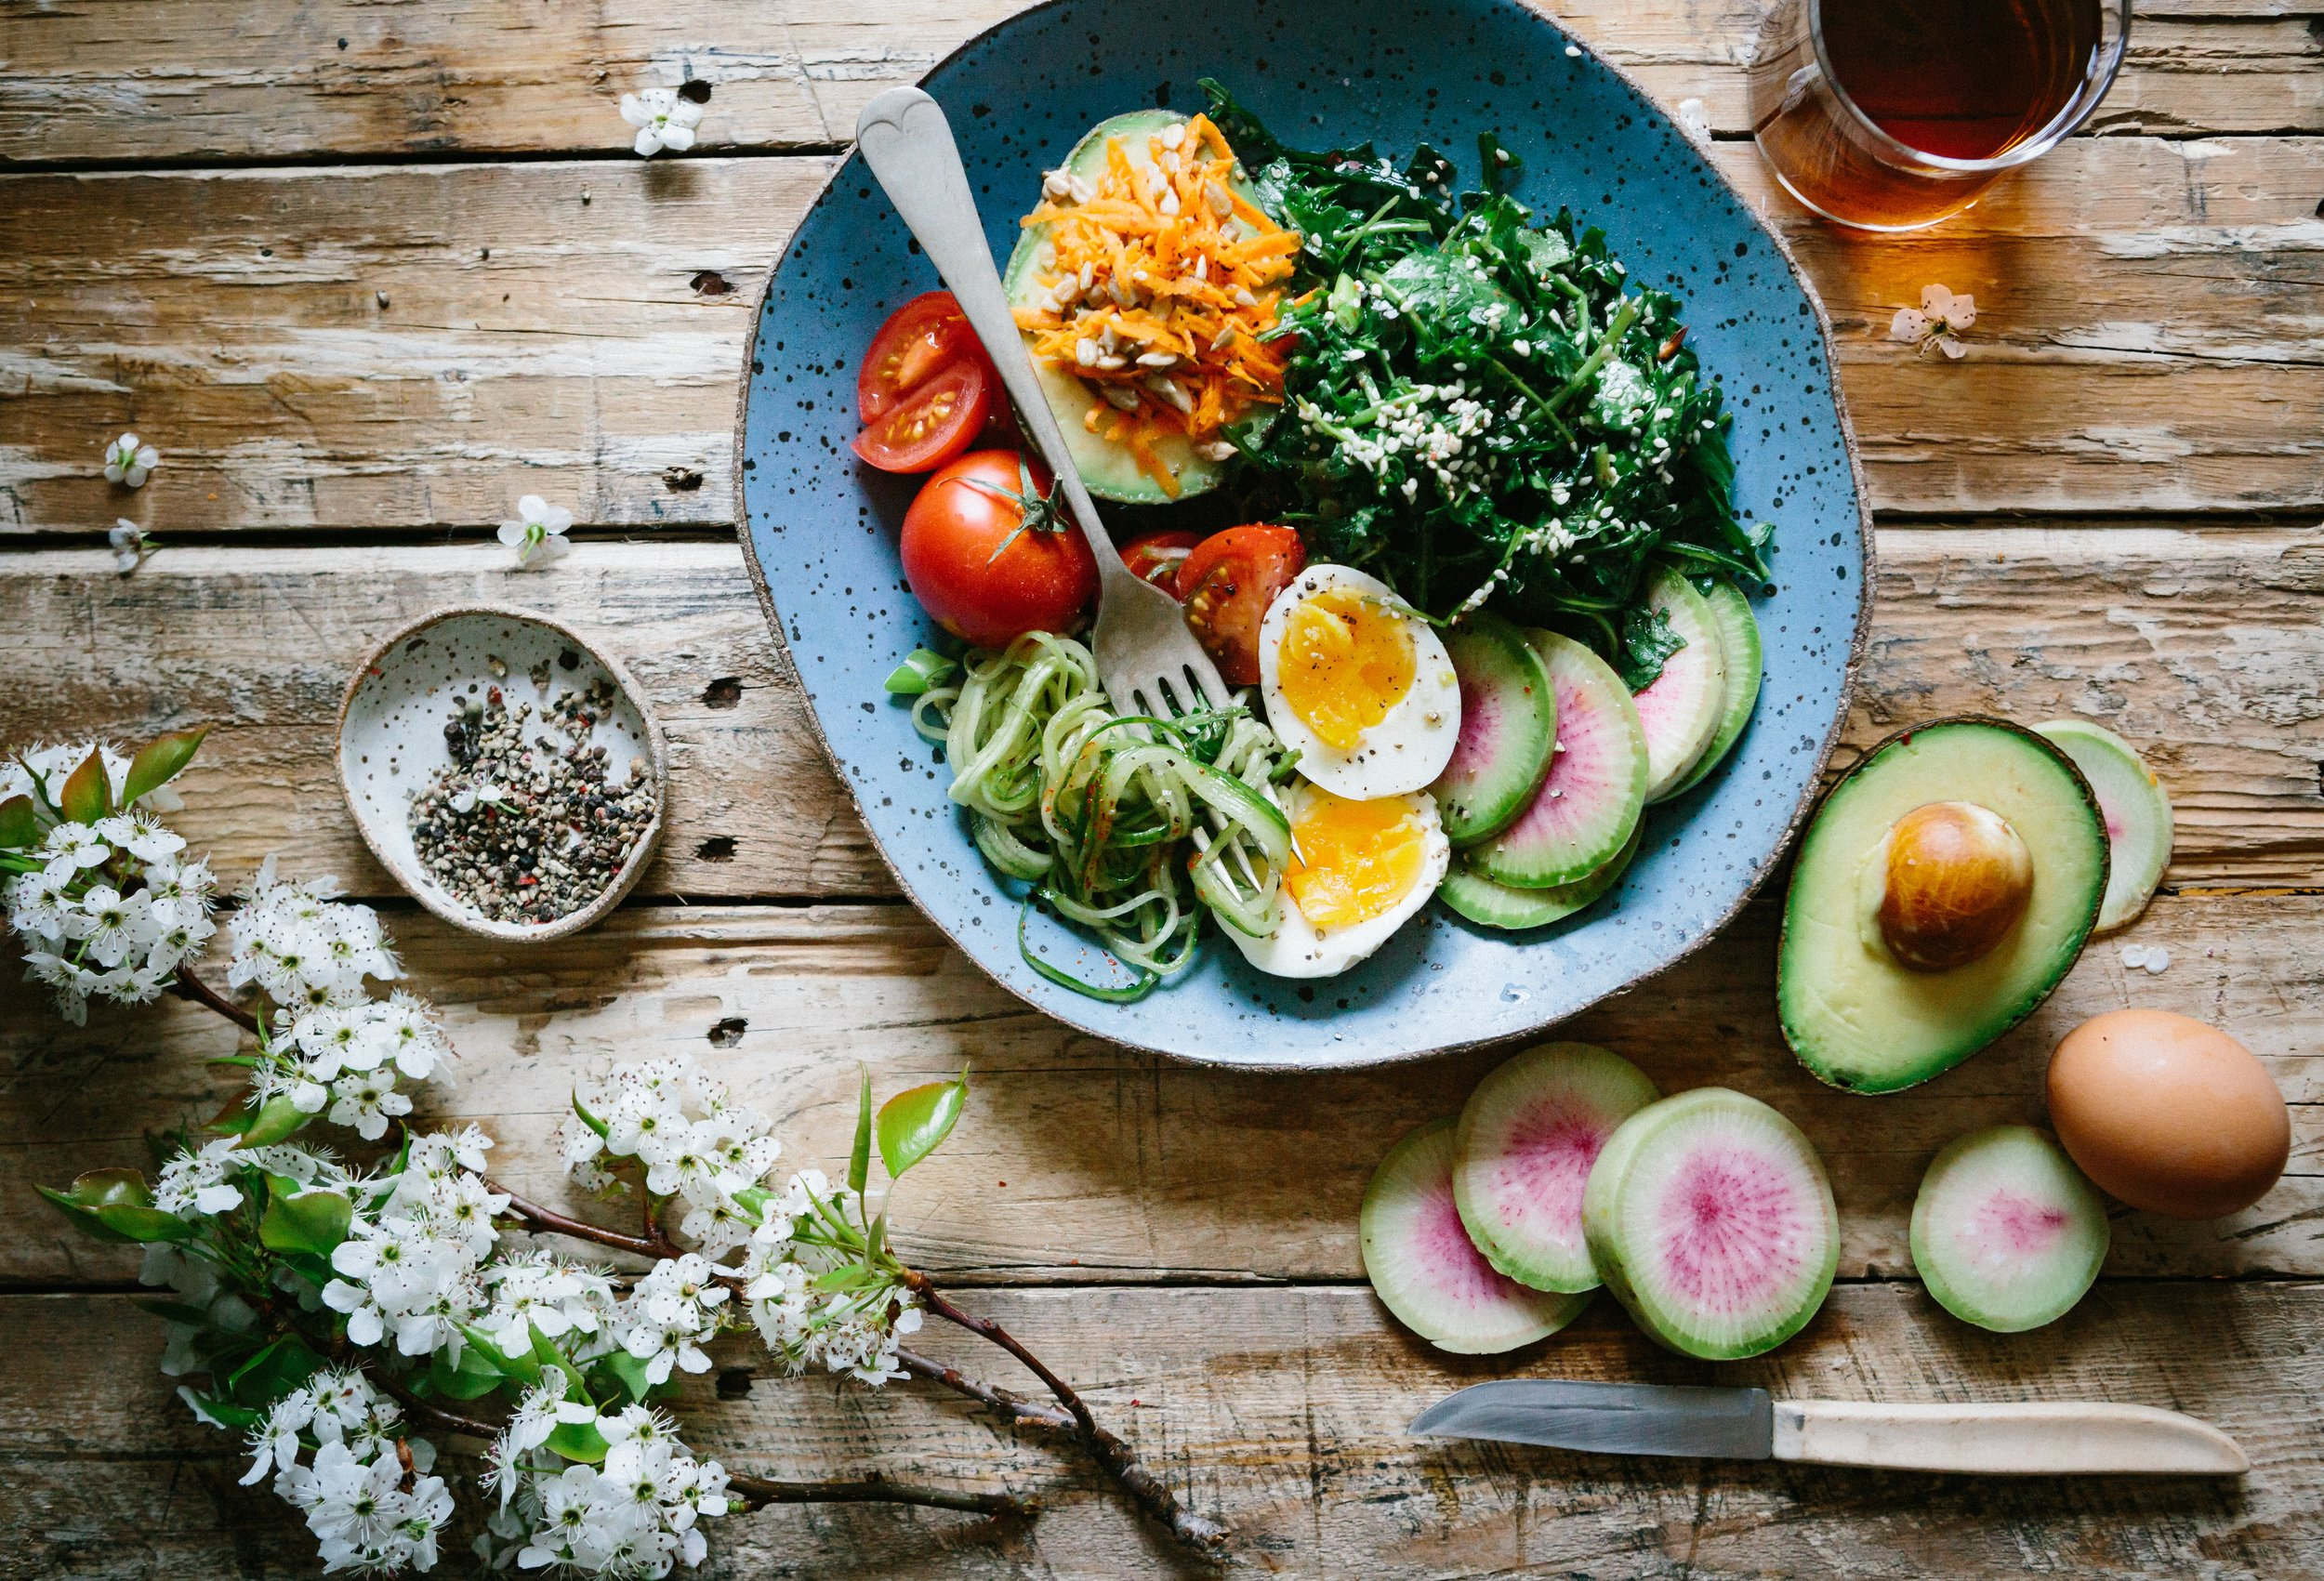 Making Healthy Food Choices - Don't forget that healthy food choices are also extremely important. Being at home is a great way to start eating whatever you want whenever you want. Try to stay focused and choose foods that are good for you.